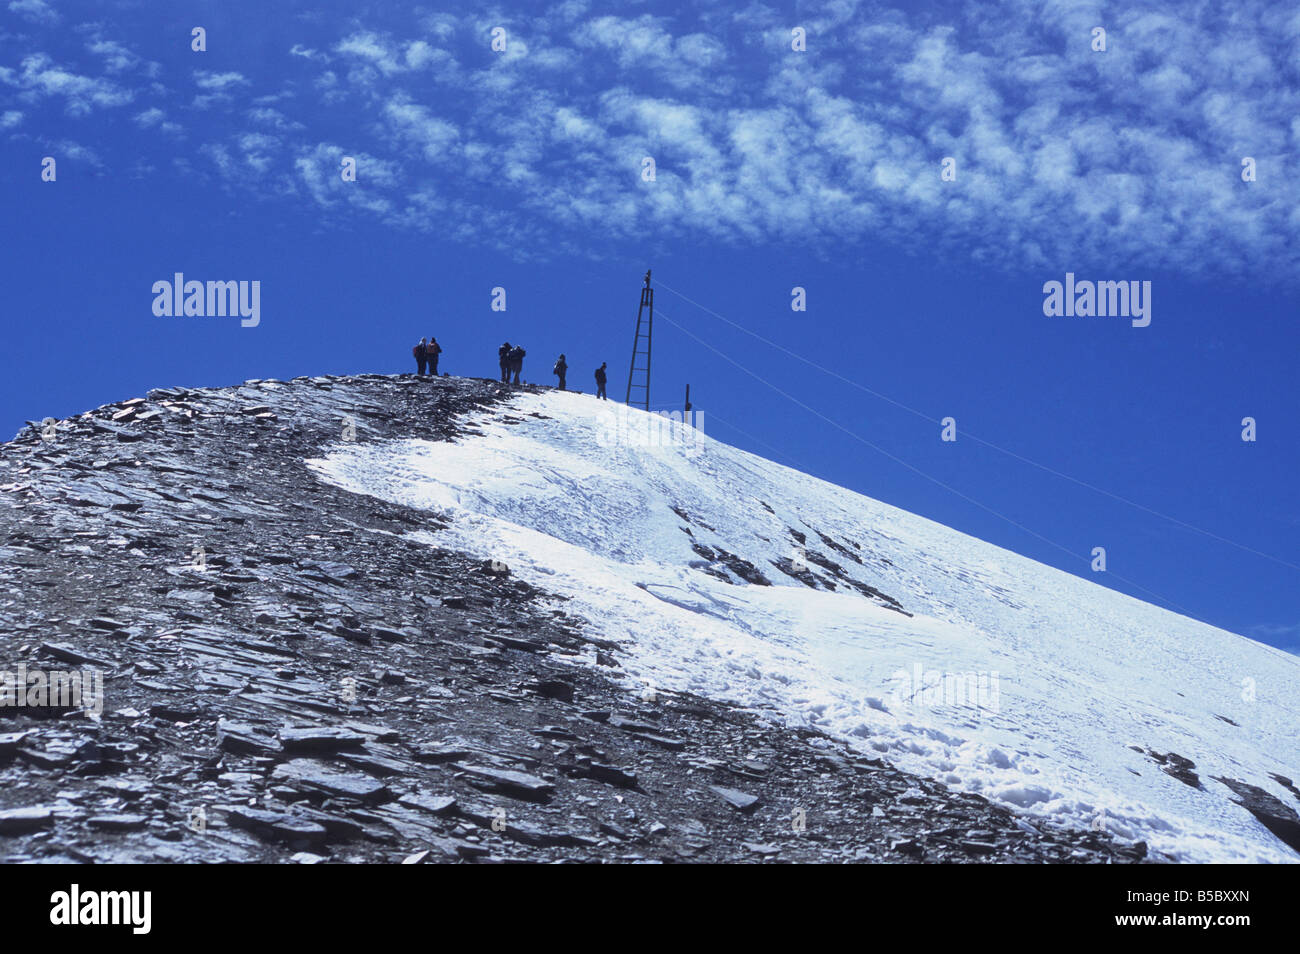 Hikers approaching summit of Mt Chacaltaya, Cordillera Real, Bolivia - Stock Image